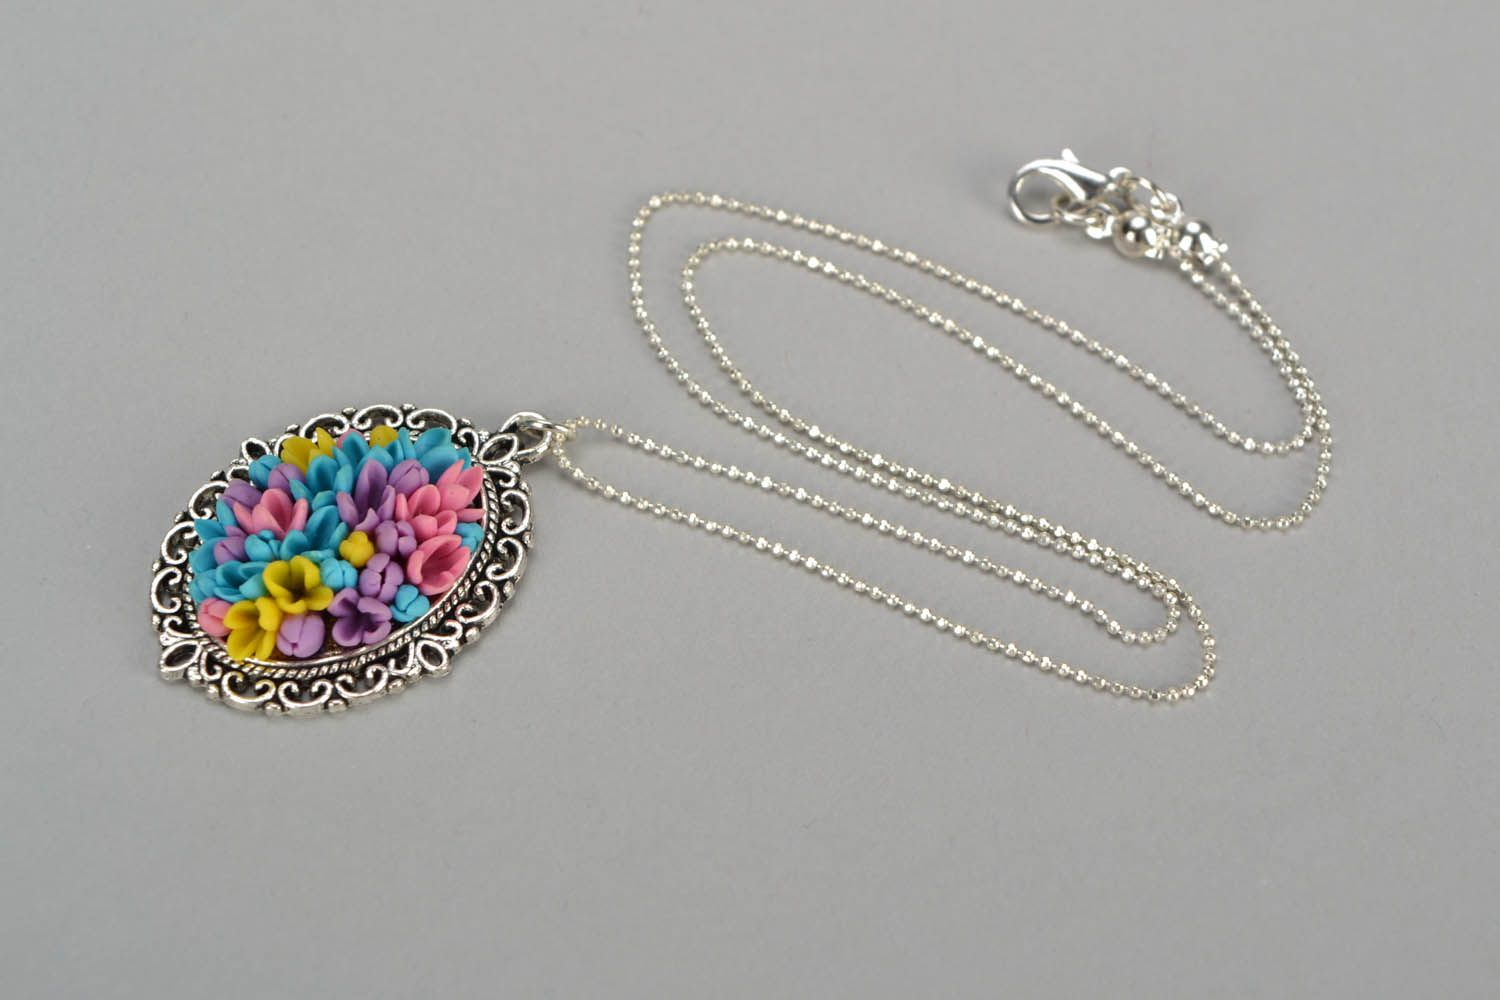 polymer clay jewelry Pendant with long chain